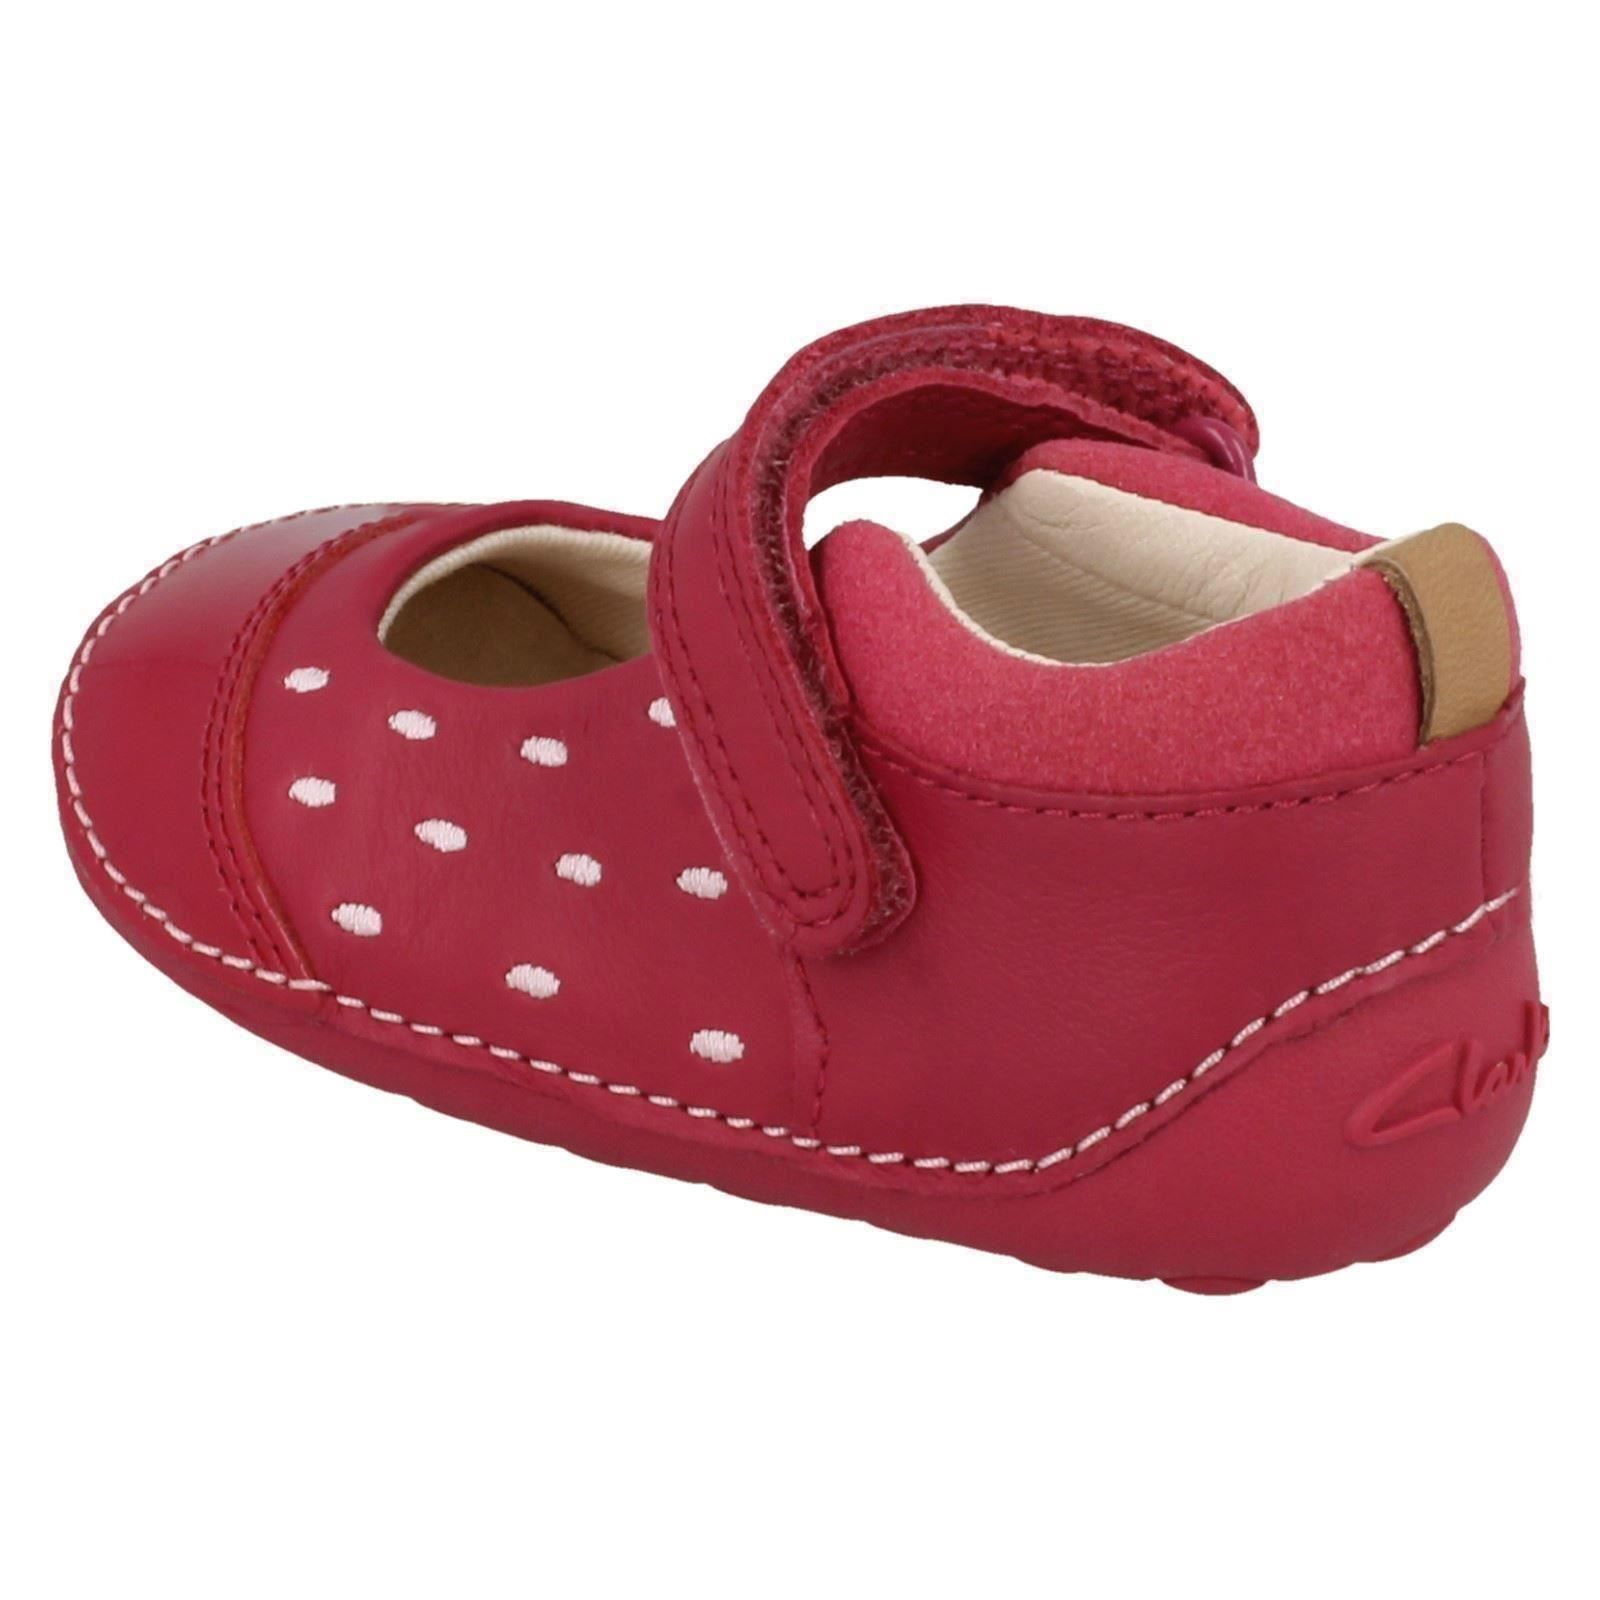 Girls Clarks Casual Mary Jane Style Hook /& Loop Leather Flats Little Lou